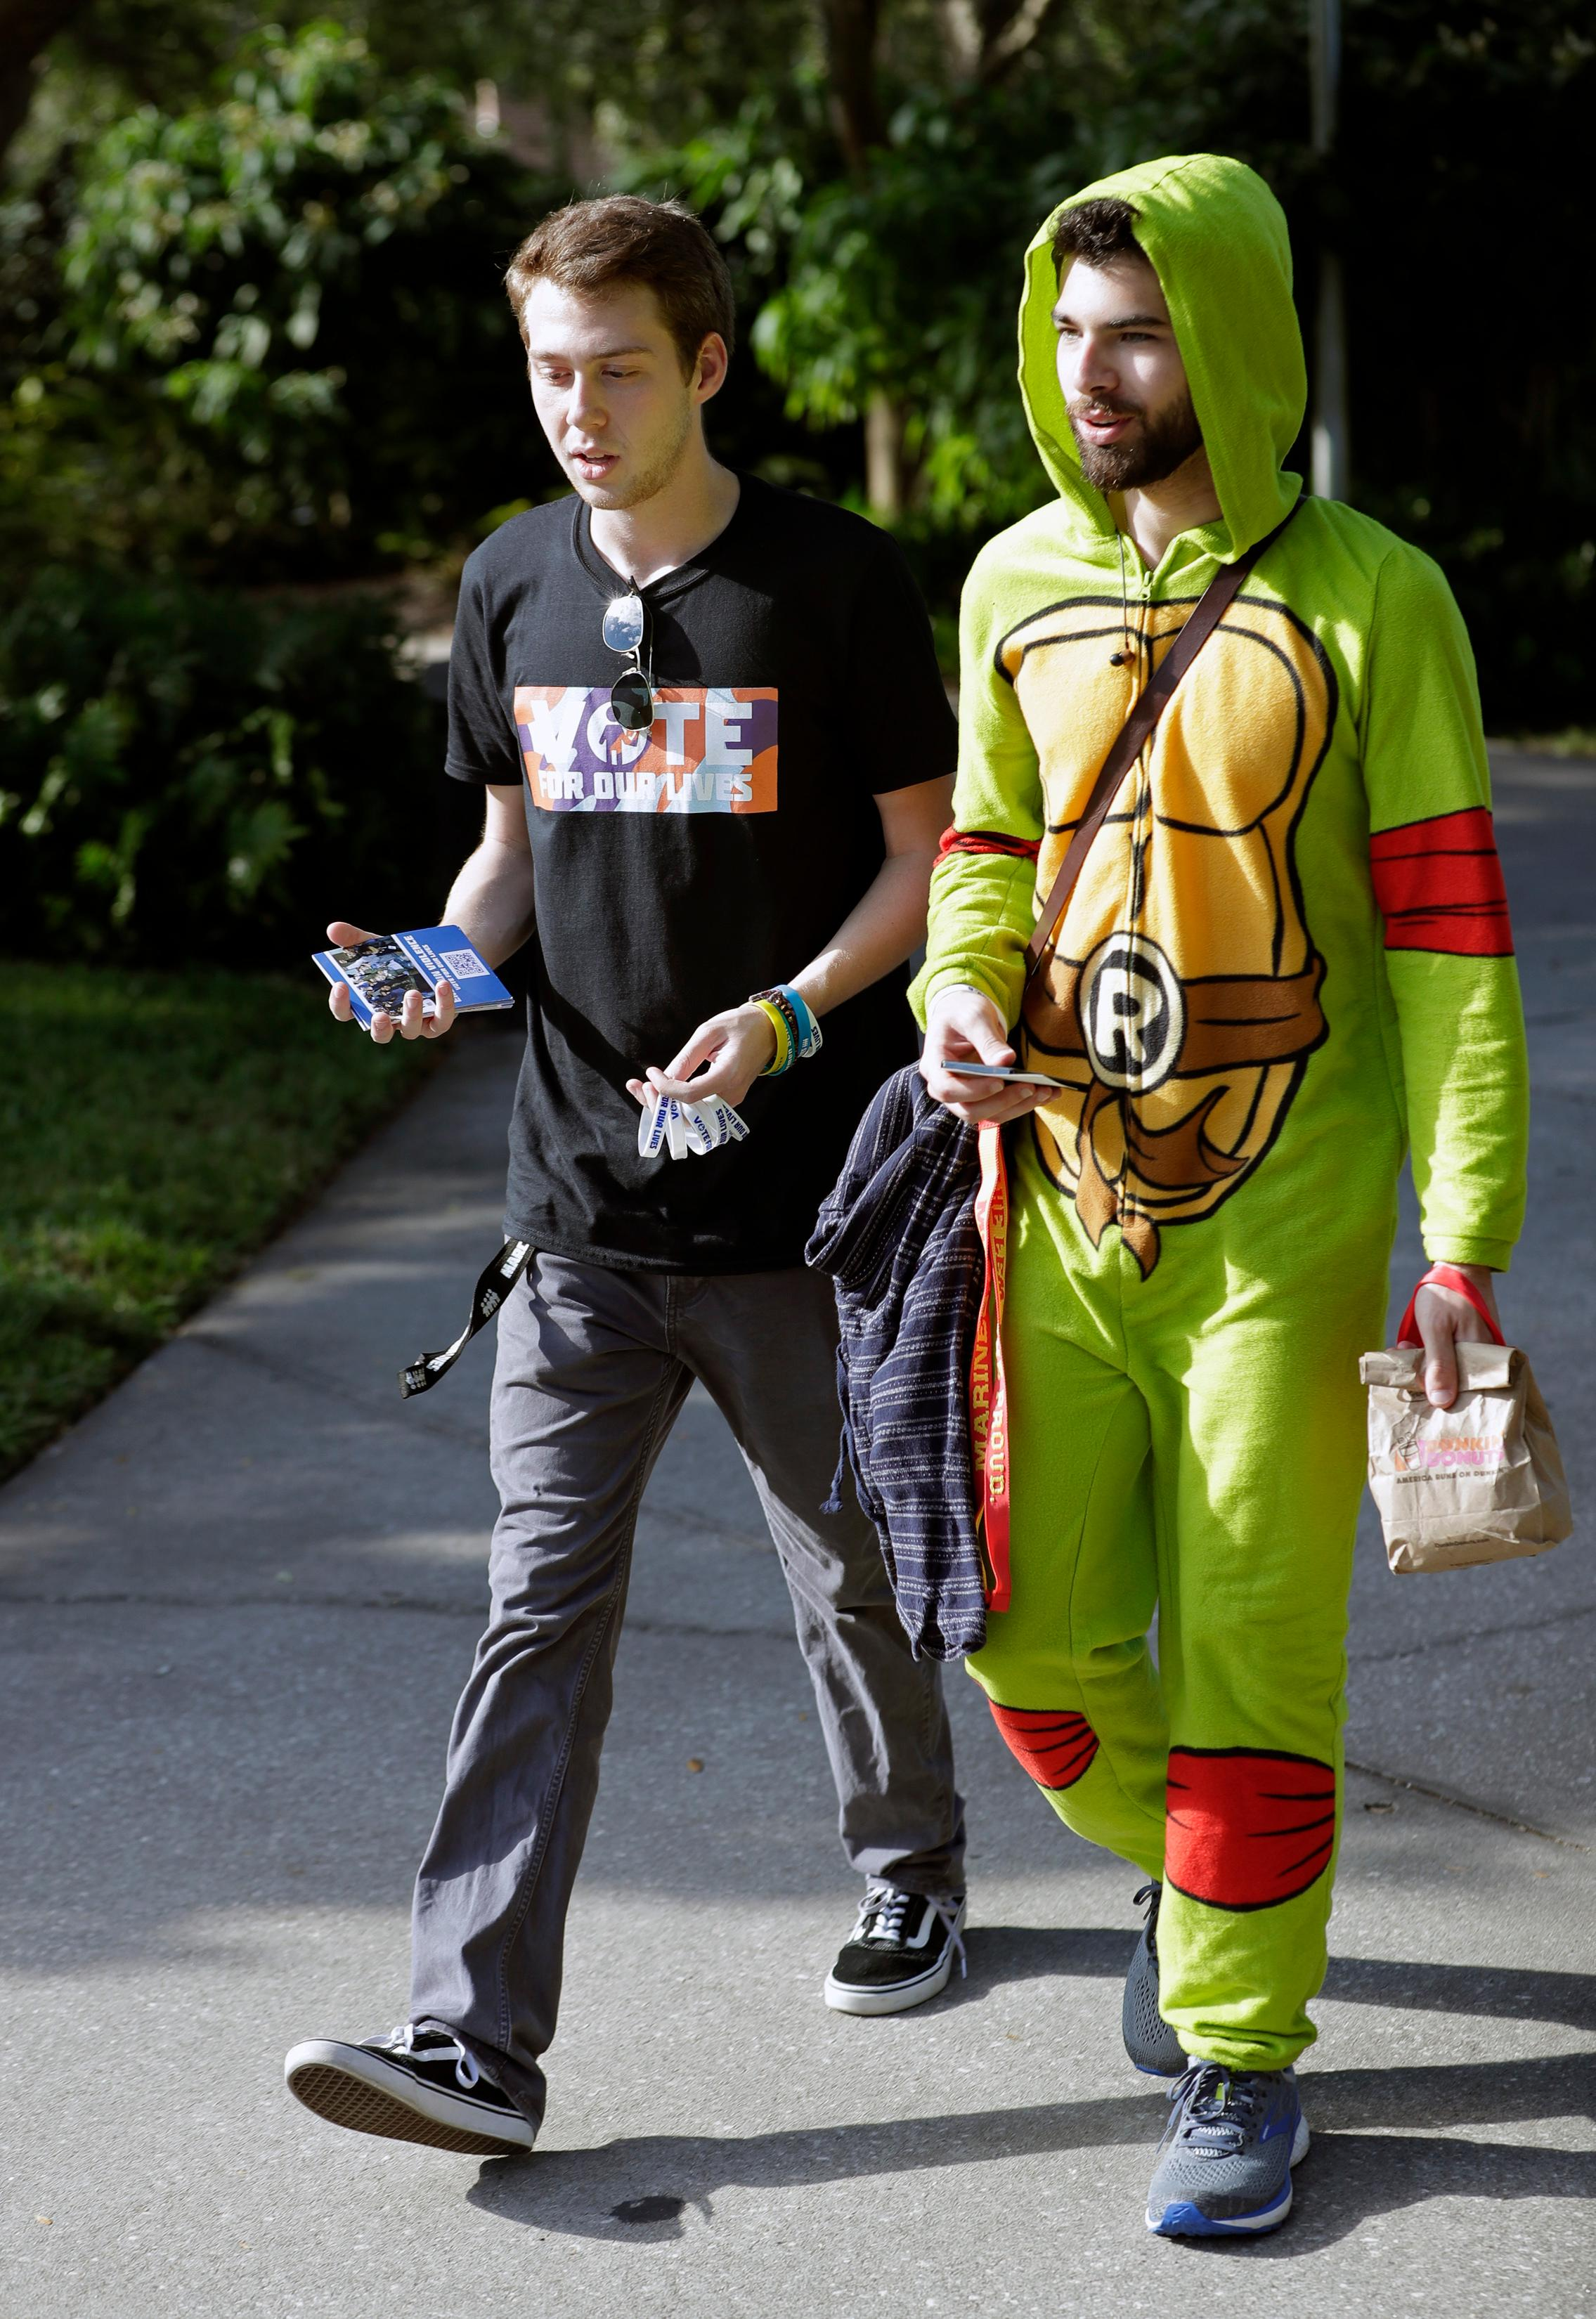 In this Wednesday, Oct. 31, 2018 photo, Bradley Thornton, left, a student volunteer, escorts Gabriel Sanchez to a polling place on campus during a Vote for Our Lives event at the University of Central Florida in Orlando, Fla. (AP Photo/John Raoux)